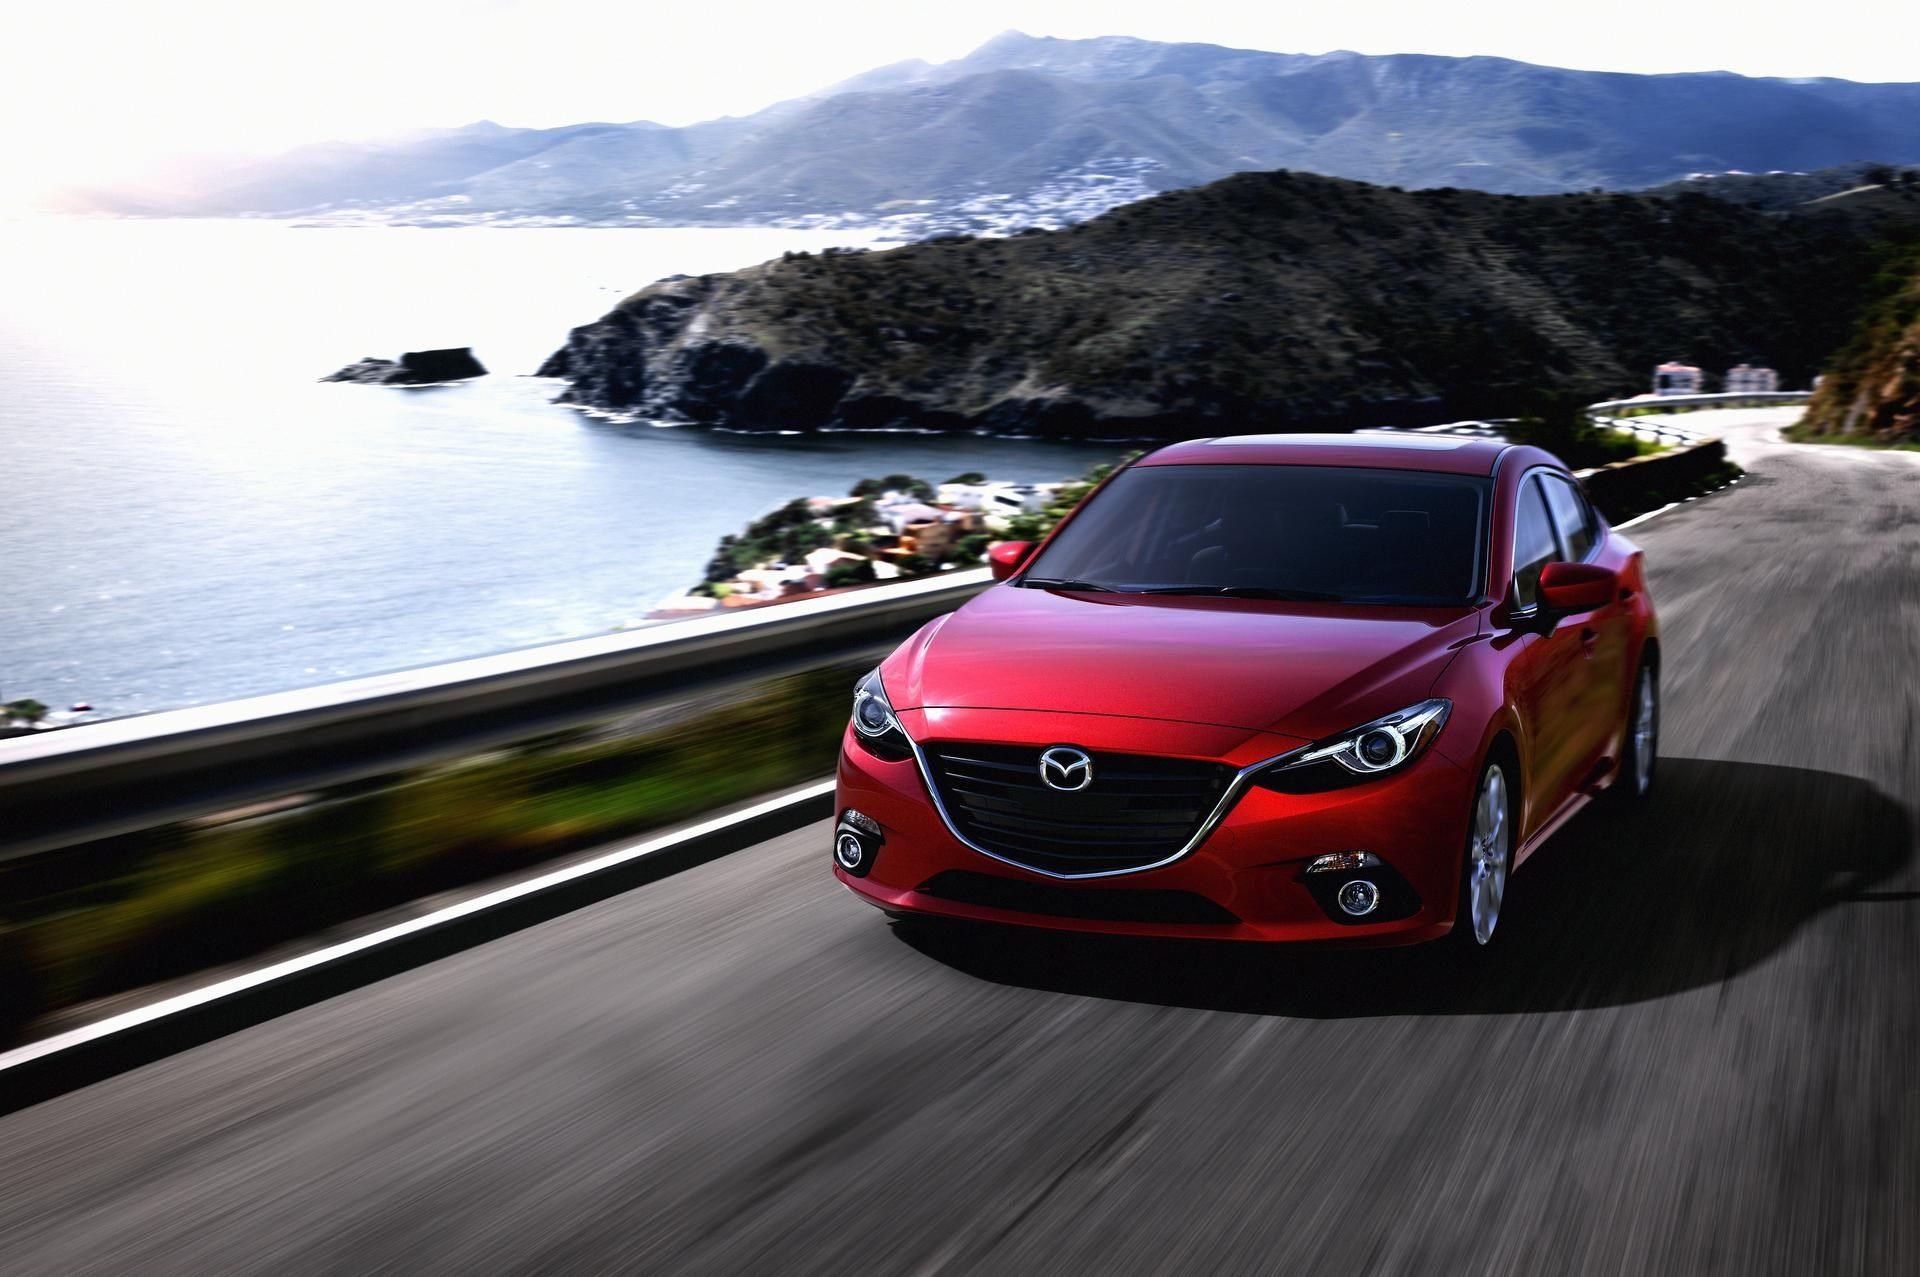 the next car the takeri concept for the 2014 mazda 6 it has